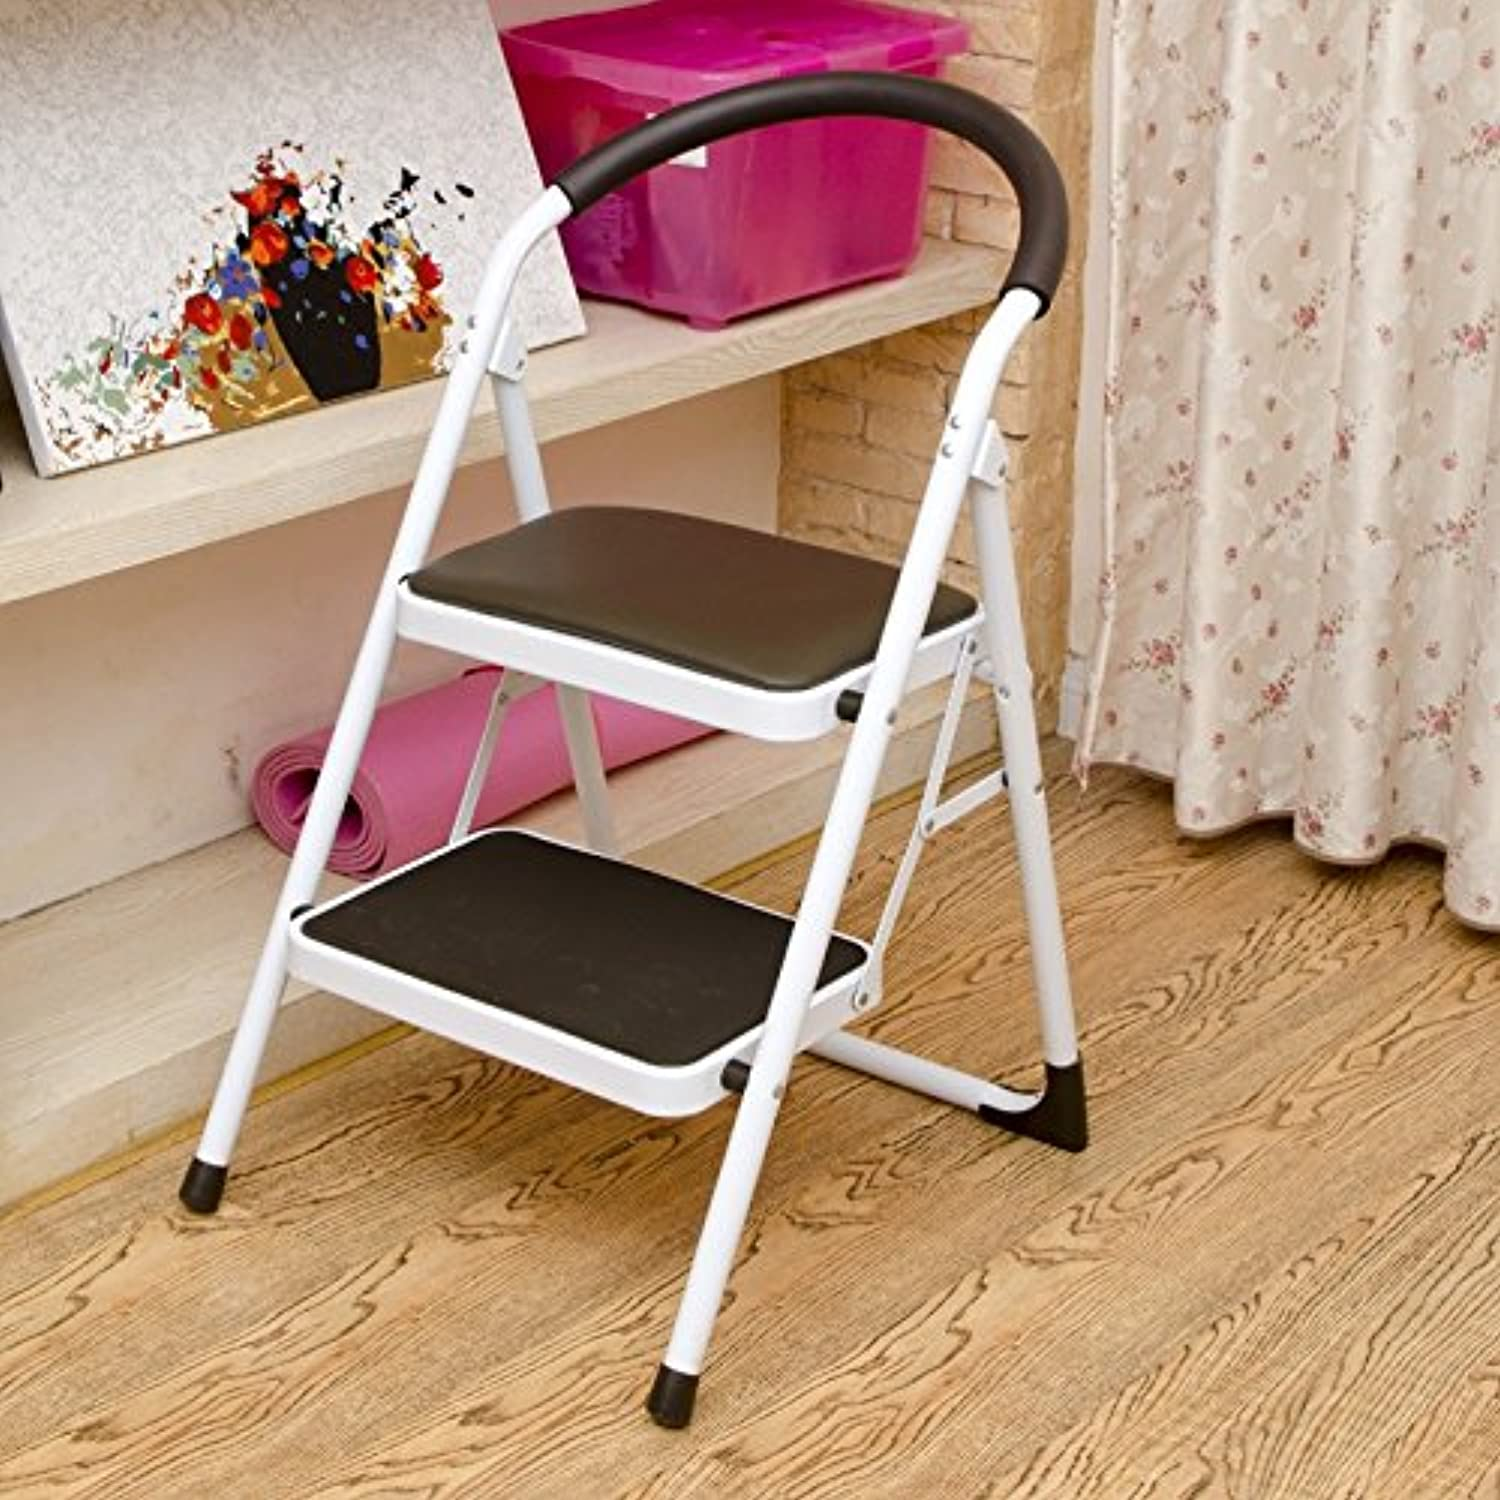 WFFXLL 2-Step Ladder Stool Matal Steel Thick Folding Stool with Anti-Slip mat, Suitable for Adult 150kg Multi-Function Stool Step Stool (color   Brown)